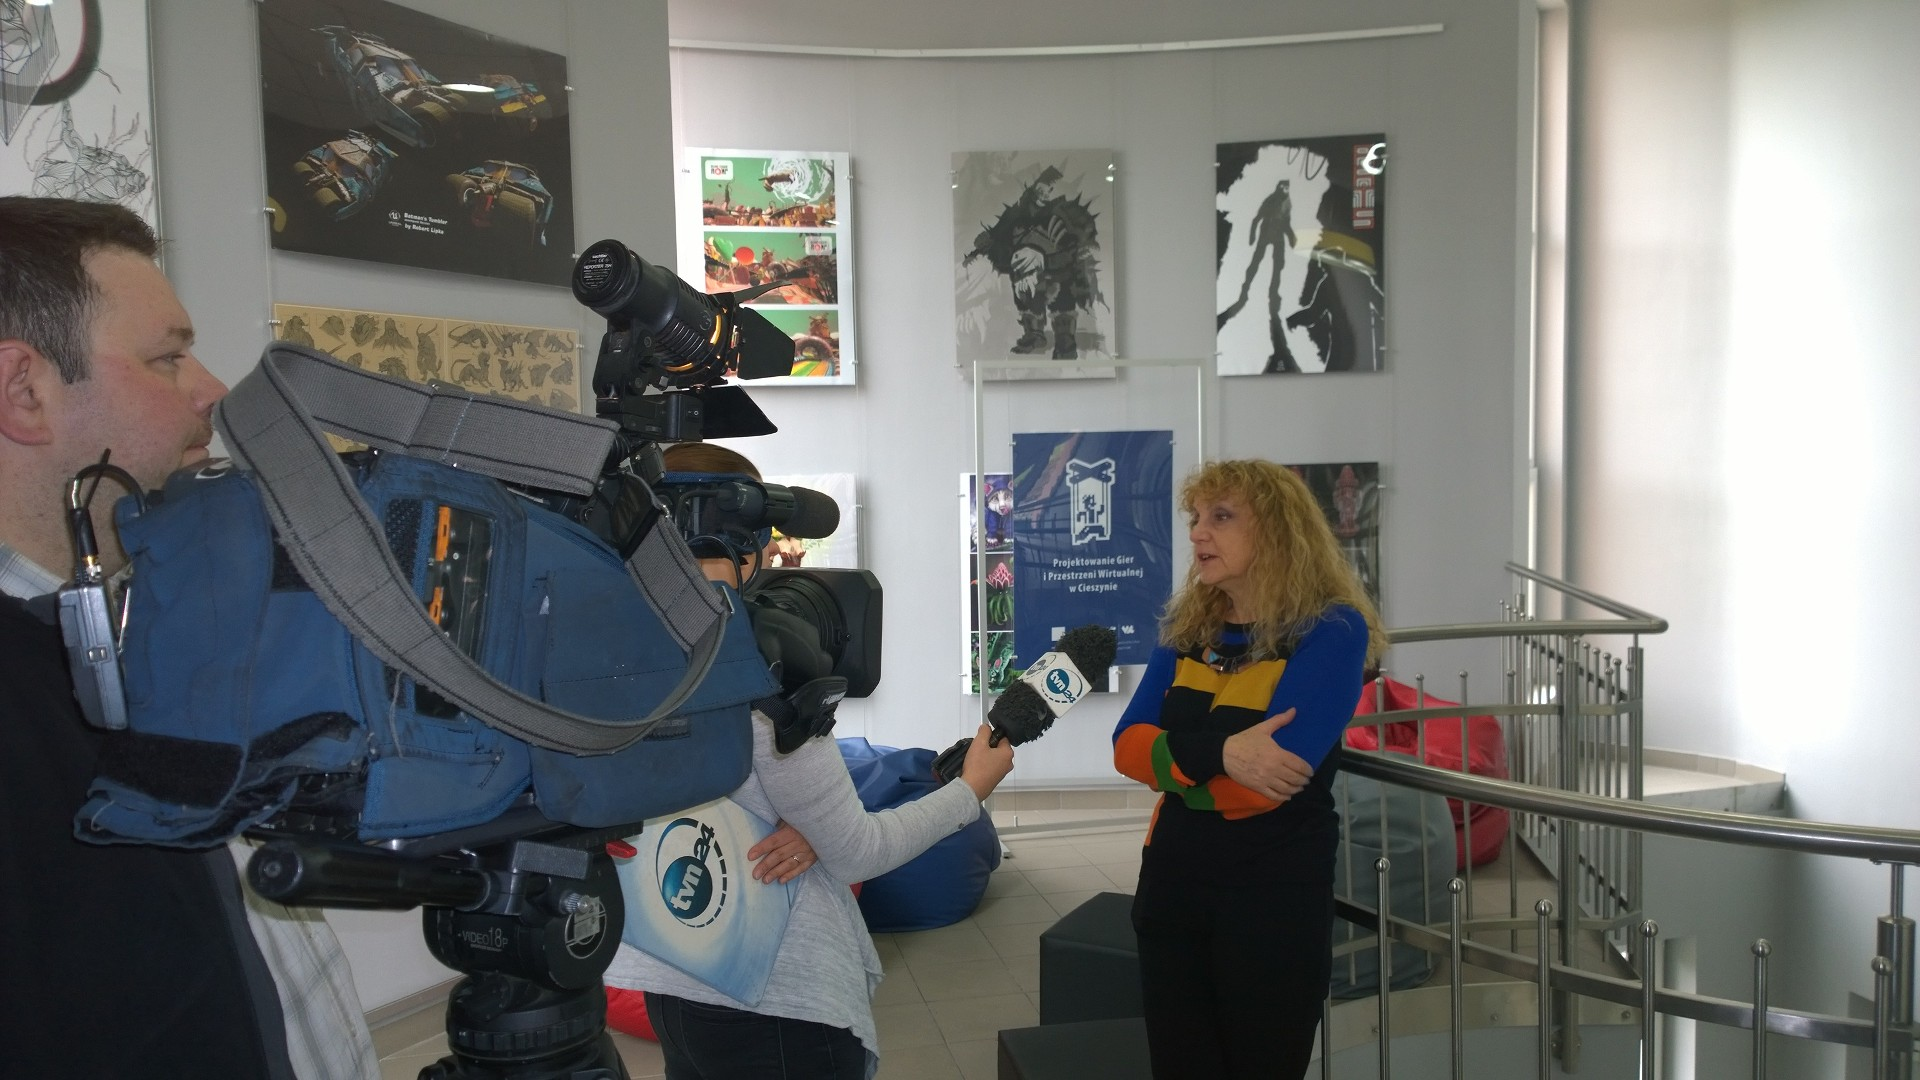 TVN24 visiting our faculty